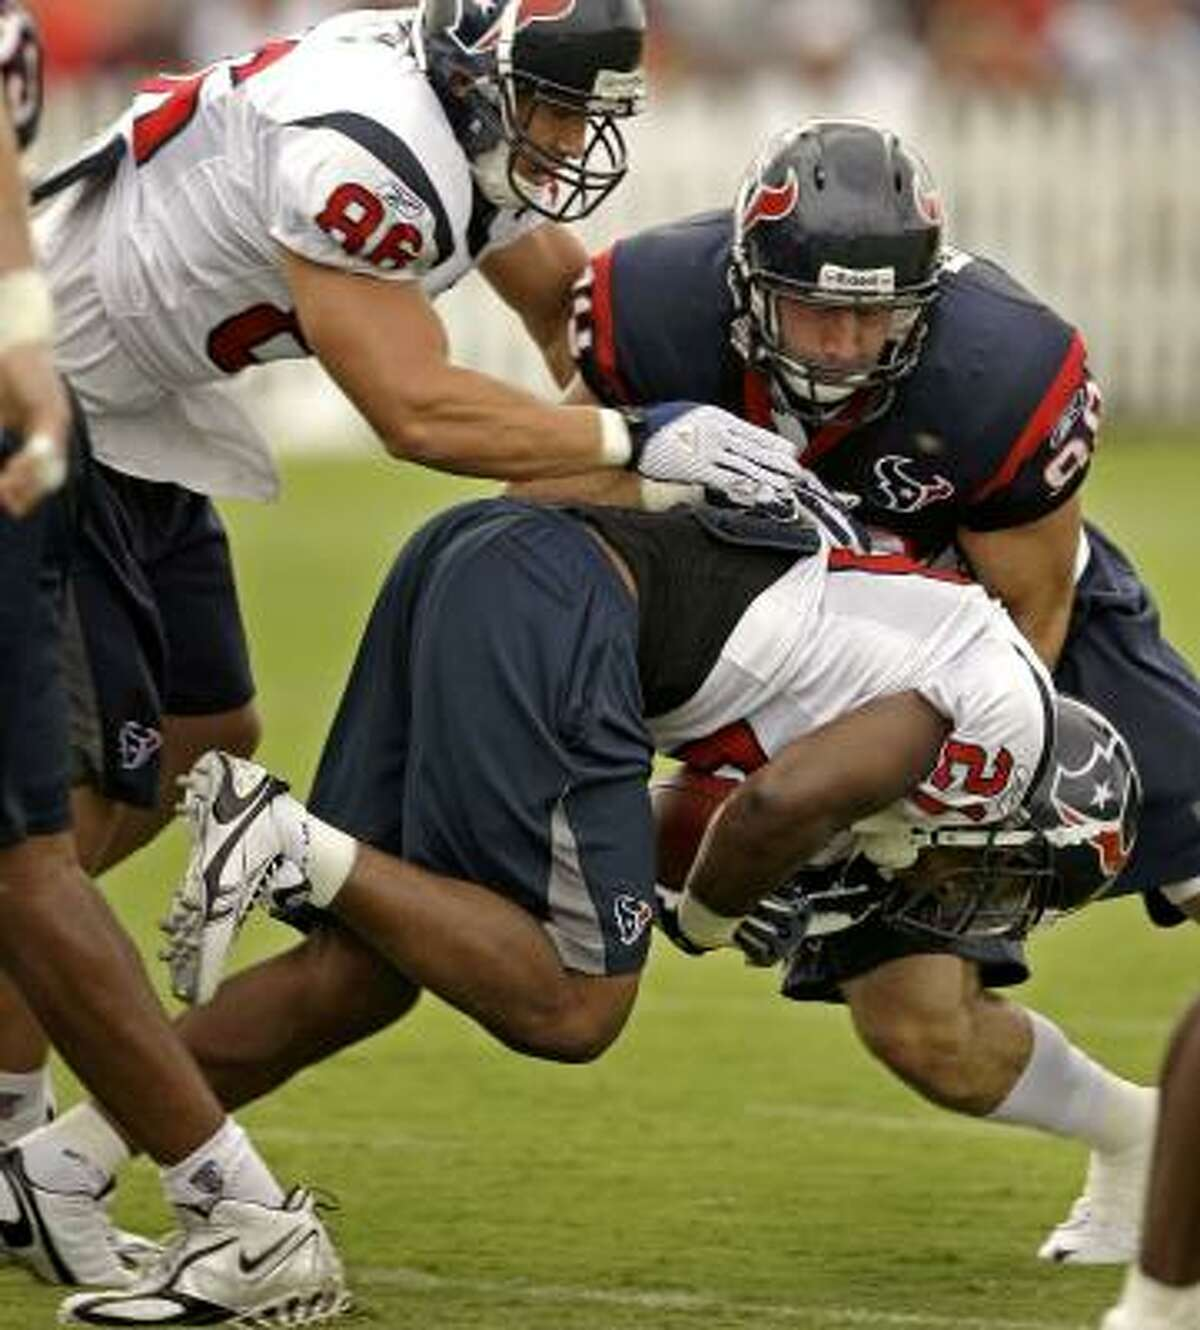 Defensive end Connor Barwin hits running back Ryan Moats.